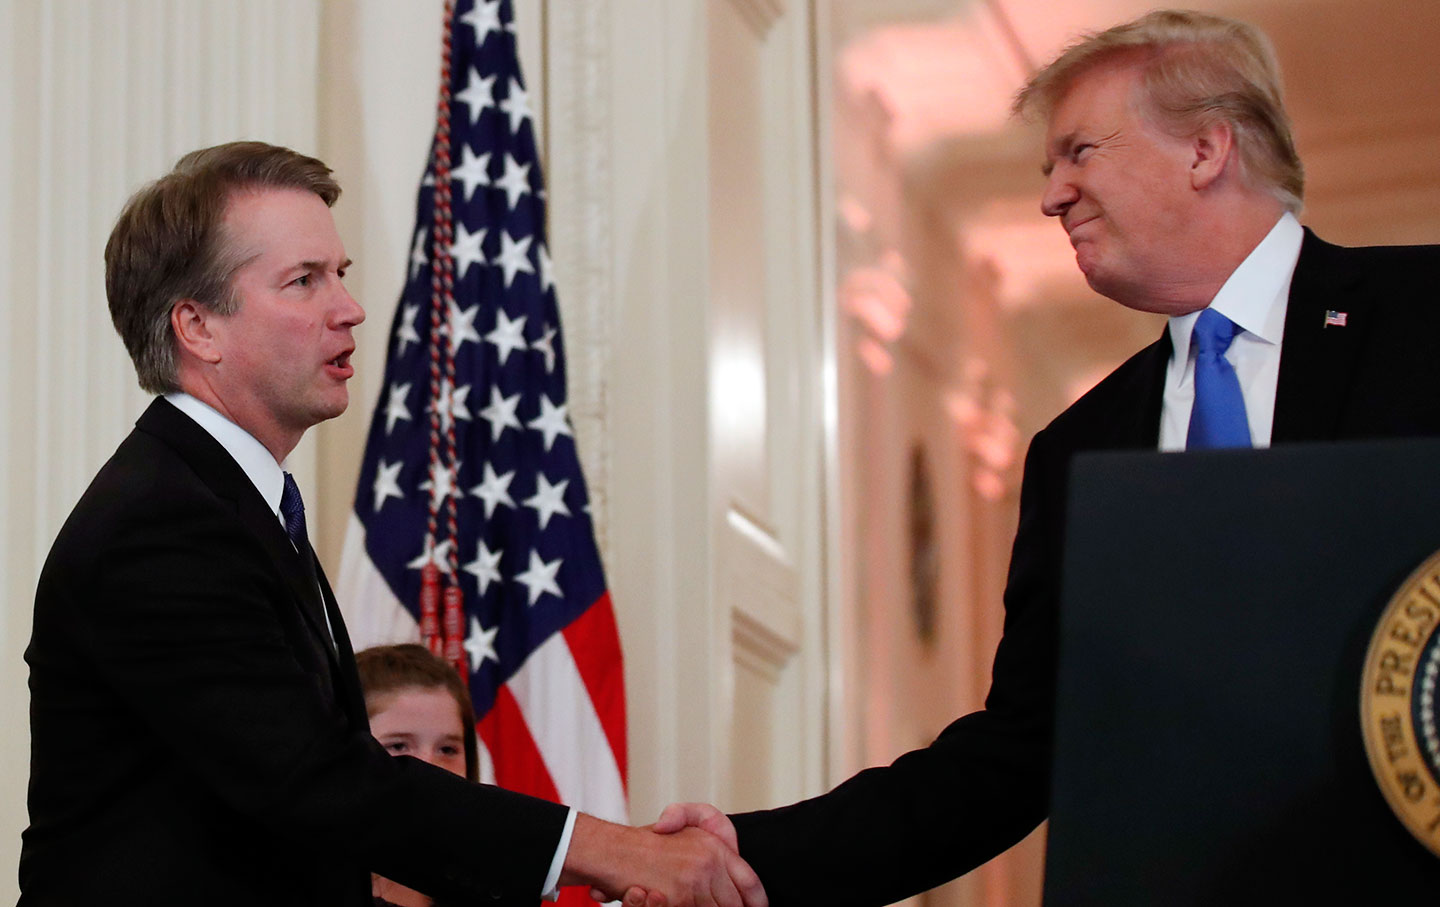 Brett Kavanaugh and Donald Trump